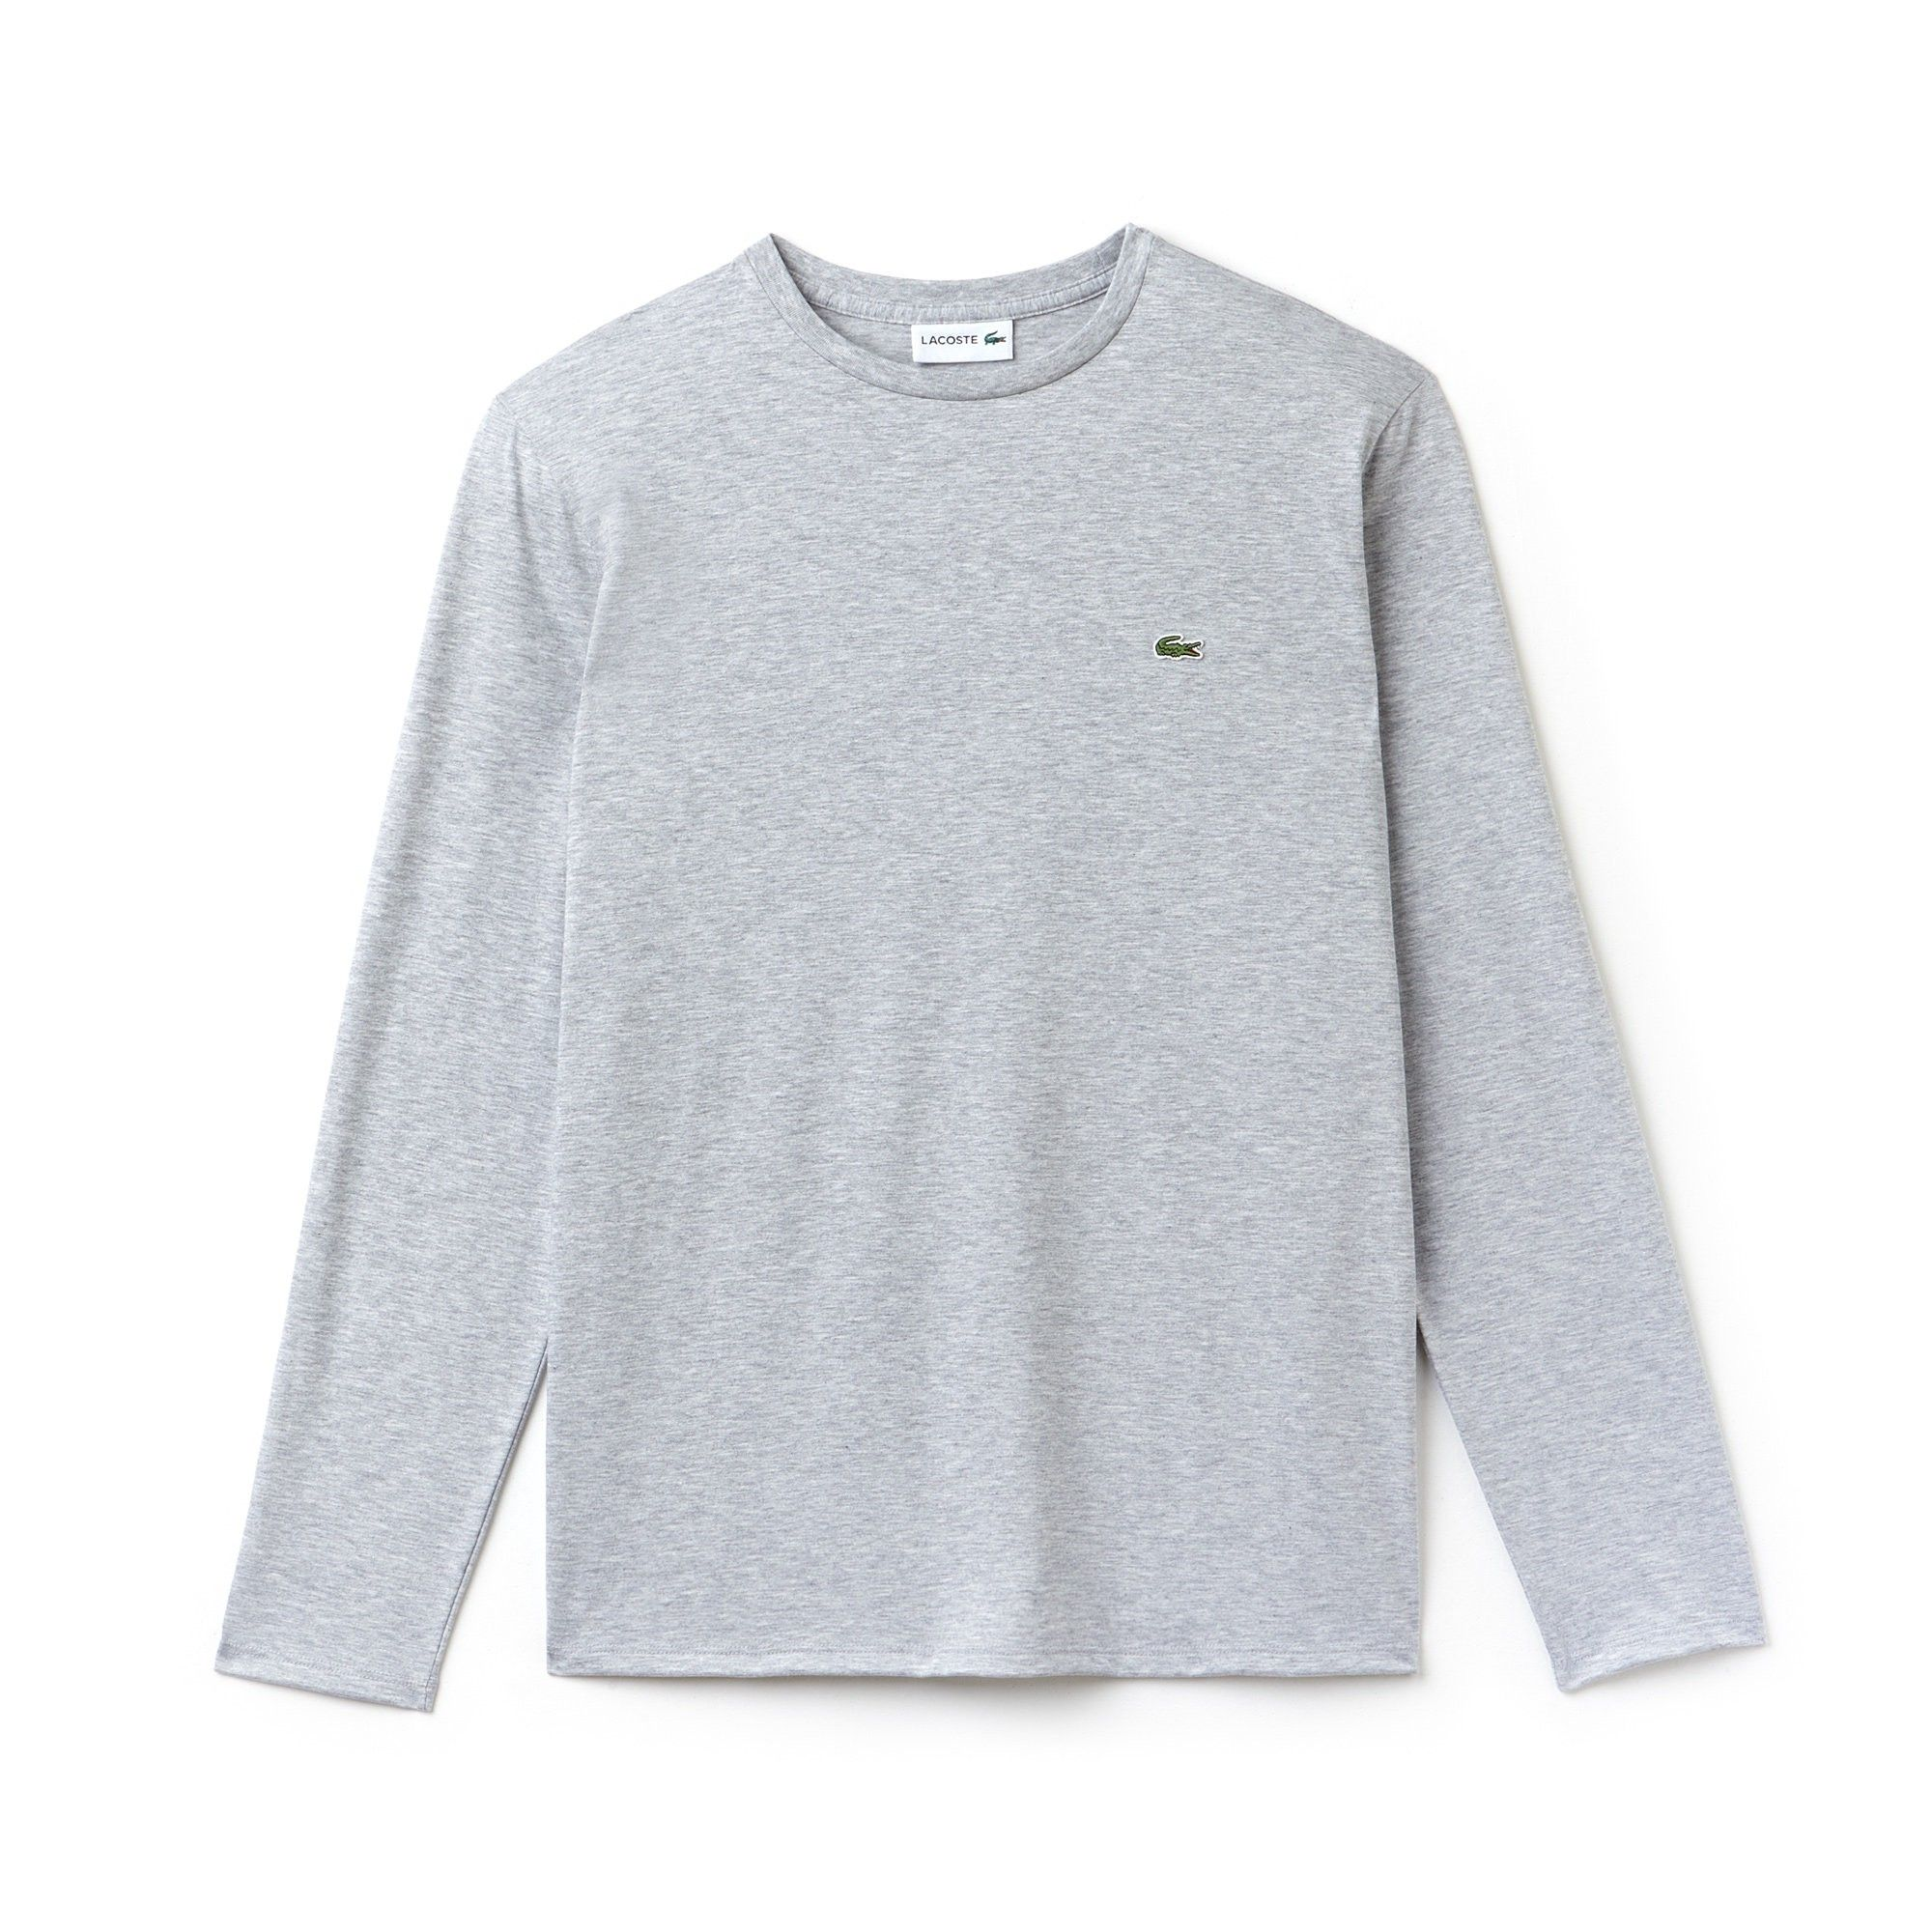 b861a35dcd9f0 LACOSTE Men s Crew Neck Pima Cotton Jersey T-shirt - silver grey chine.   lacoste  cloth